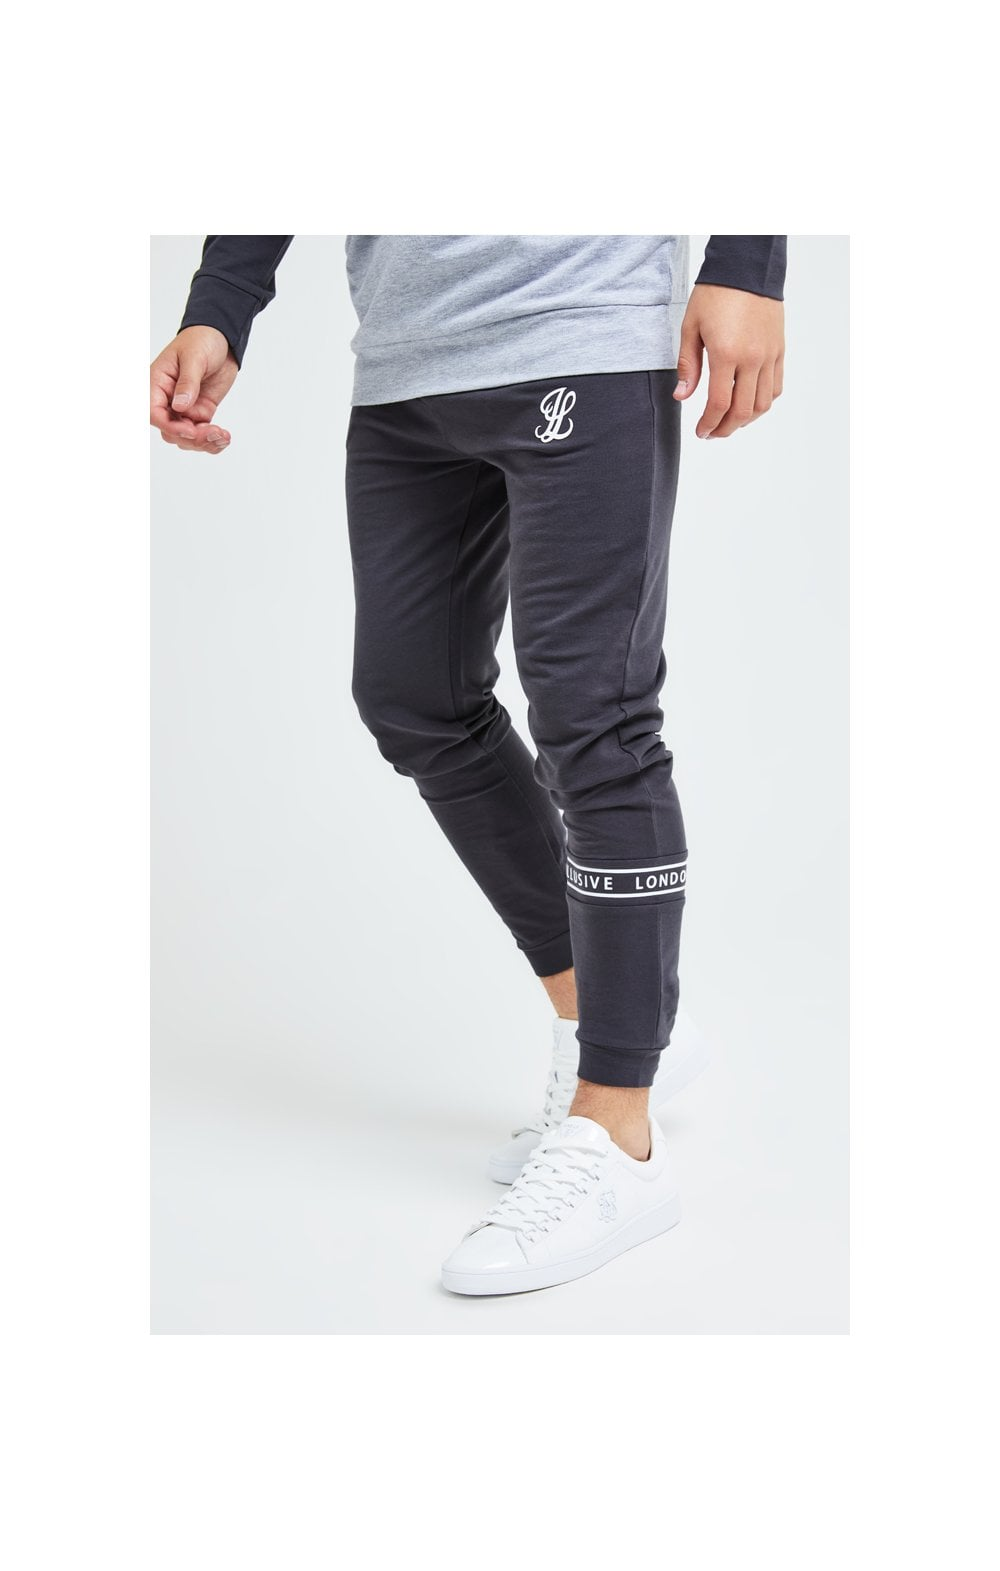 Load image into Gallery viewer, Illusive London Revere Jogger - Dark Grey & Light Grey Marl